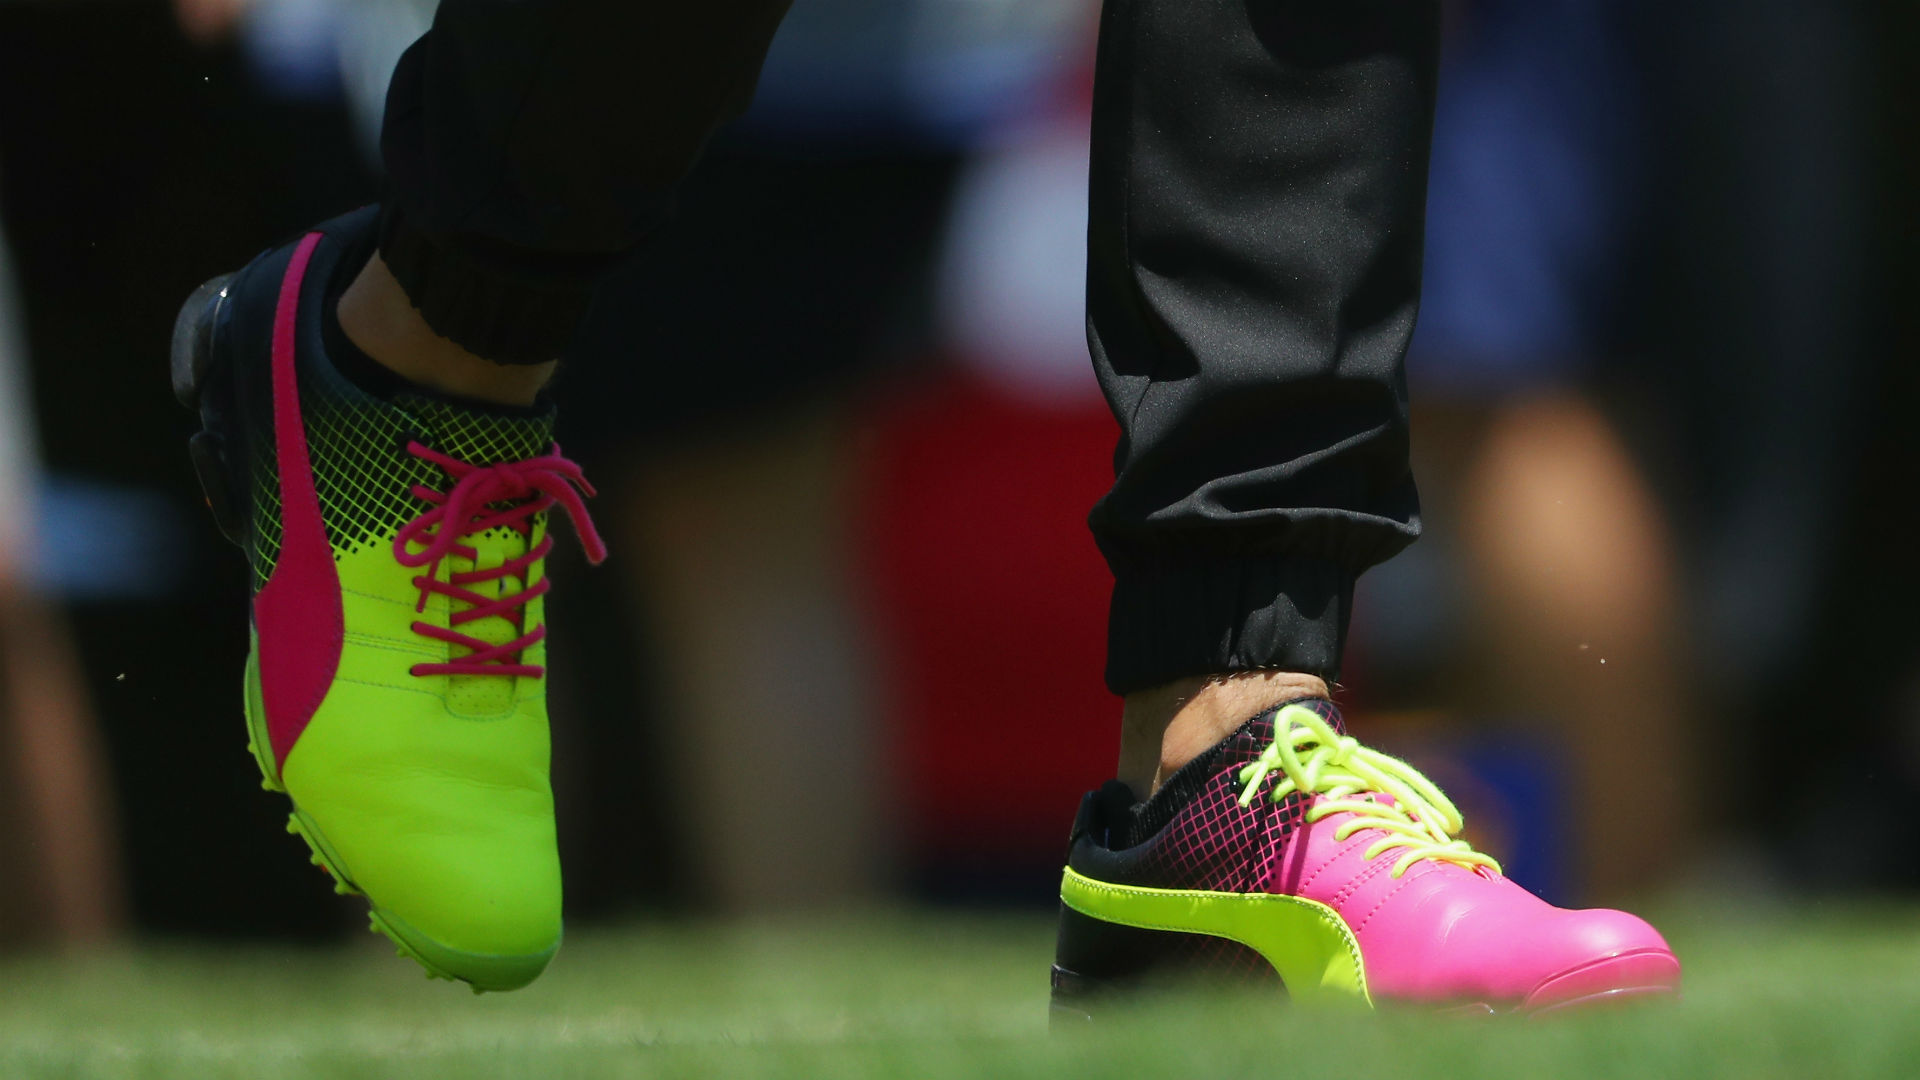 Rickie Fowler wears neon shoes at The Players Championship   Golf   Sporting News